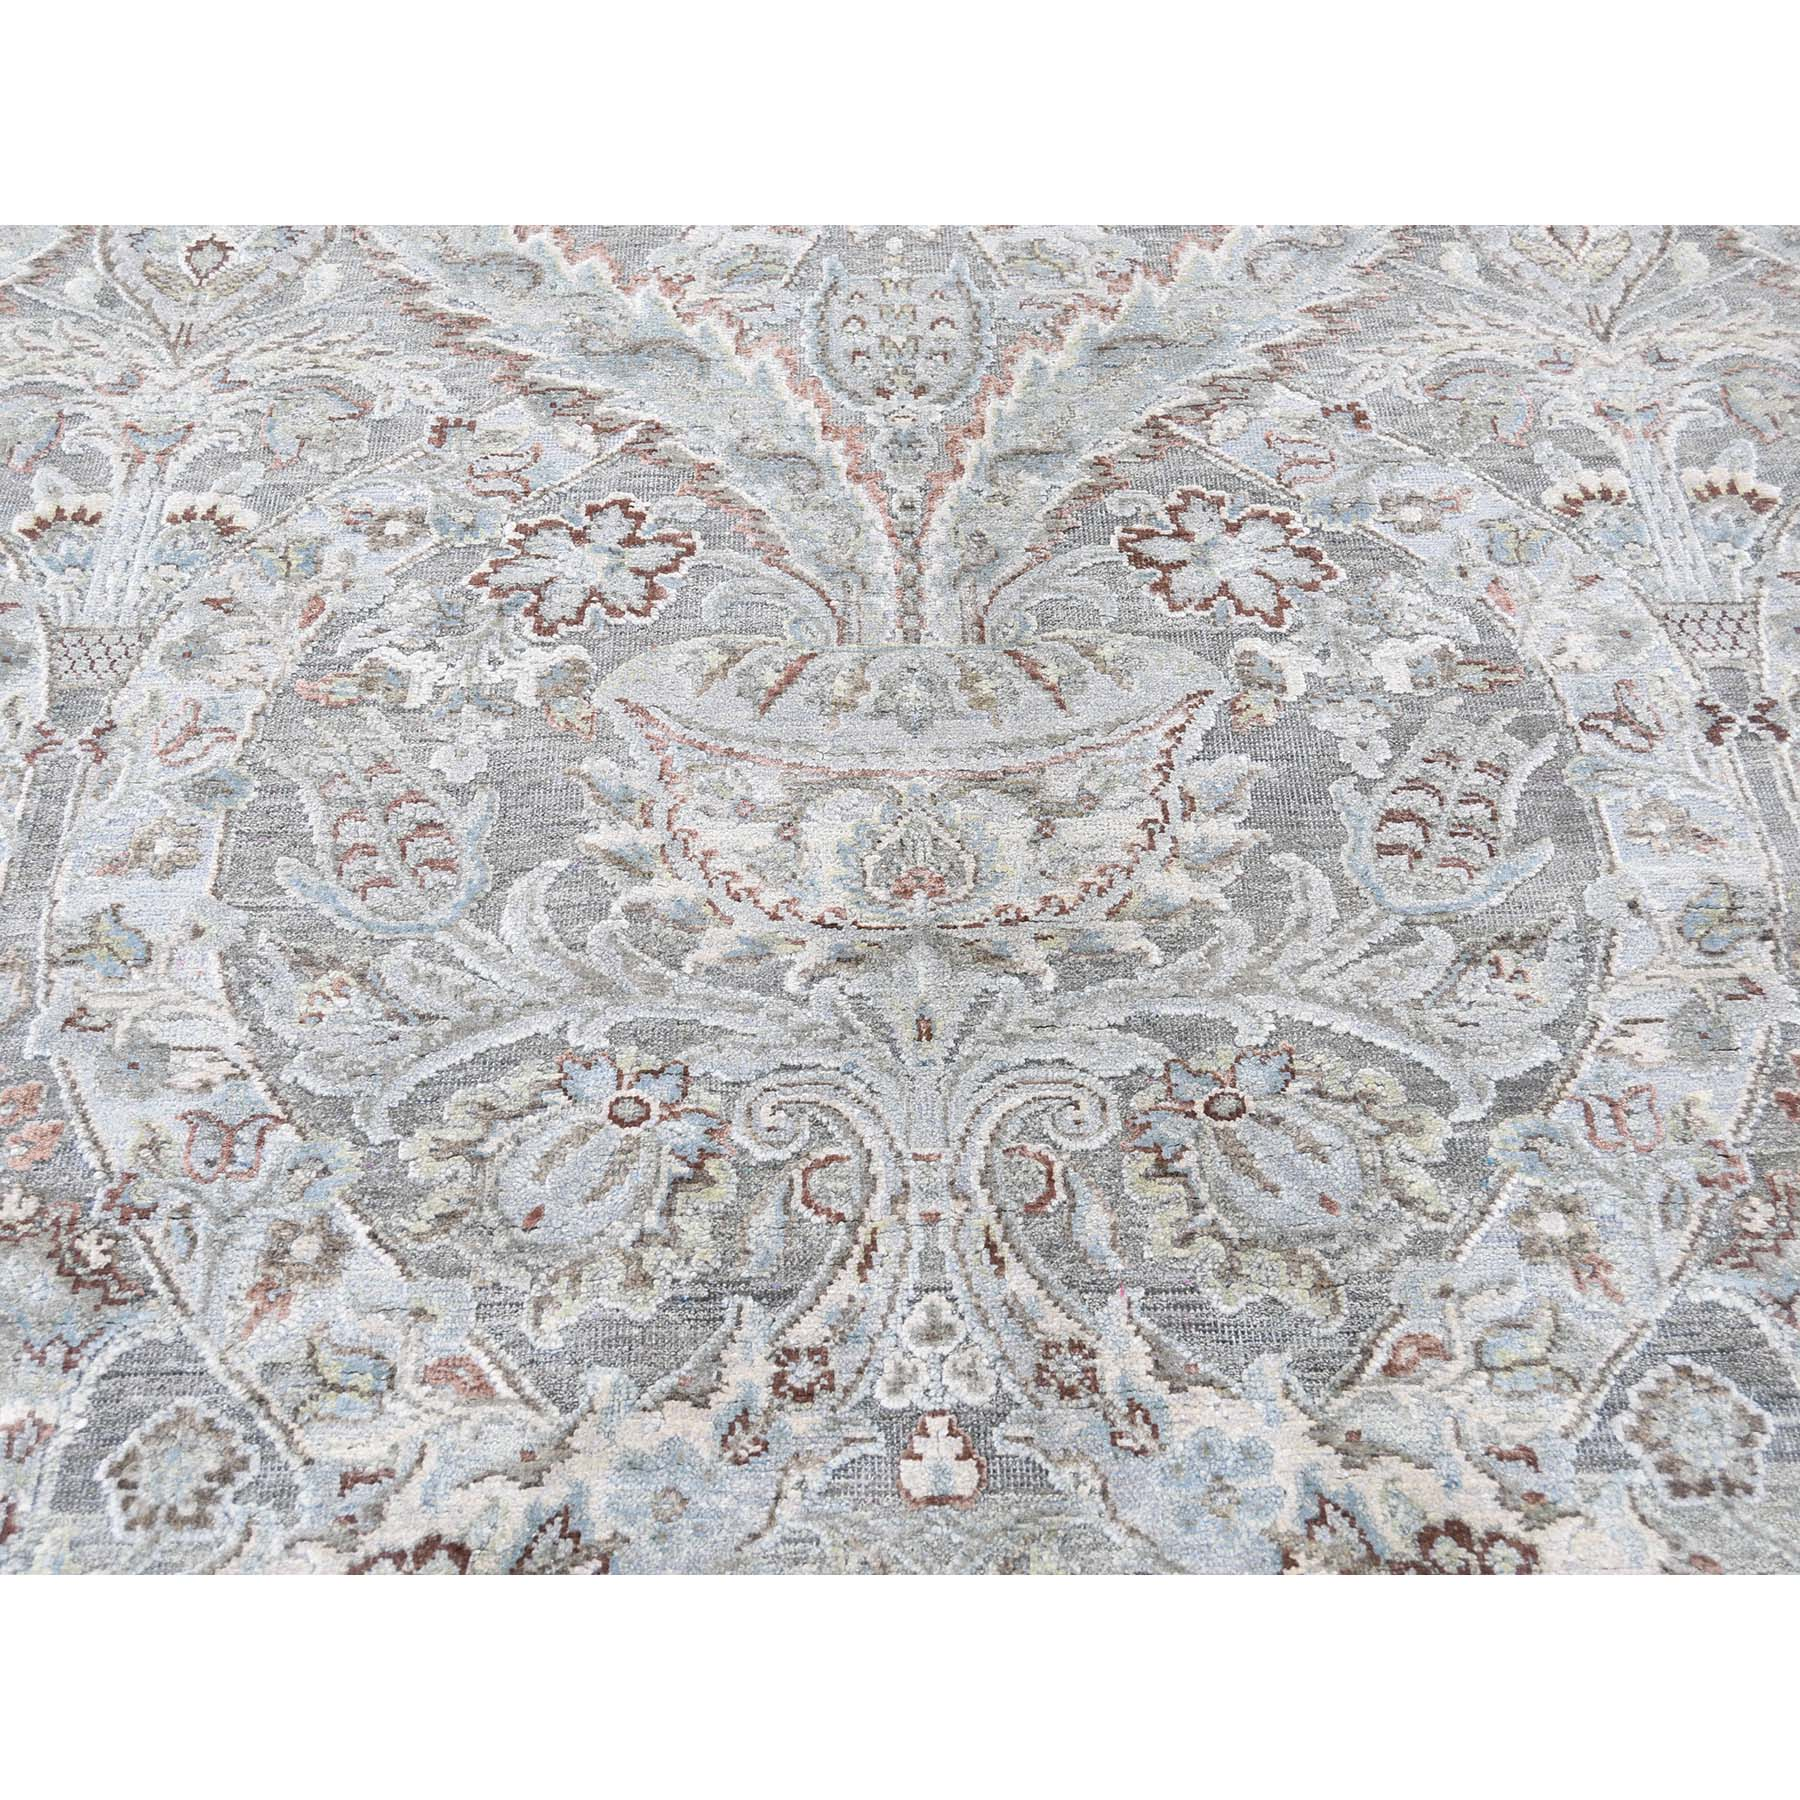 9-x12-2  Mughal Design Pure Silk With Oxidized Wool Hand-Knotted Oriental Rug